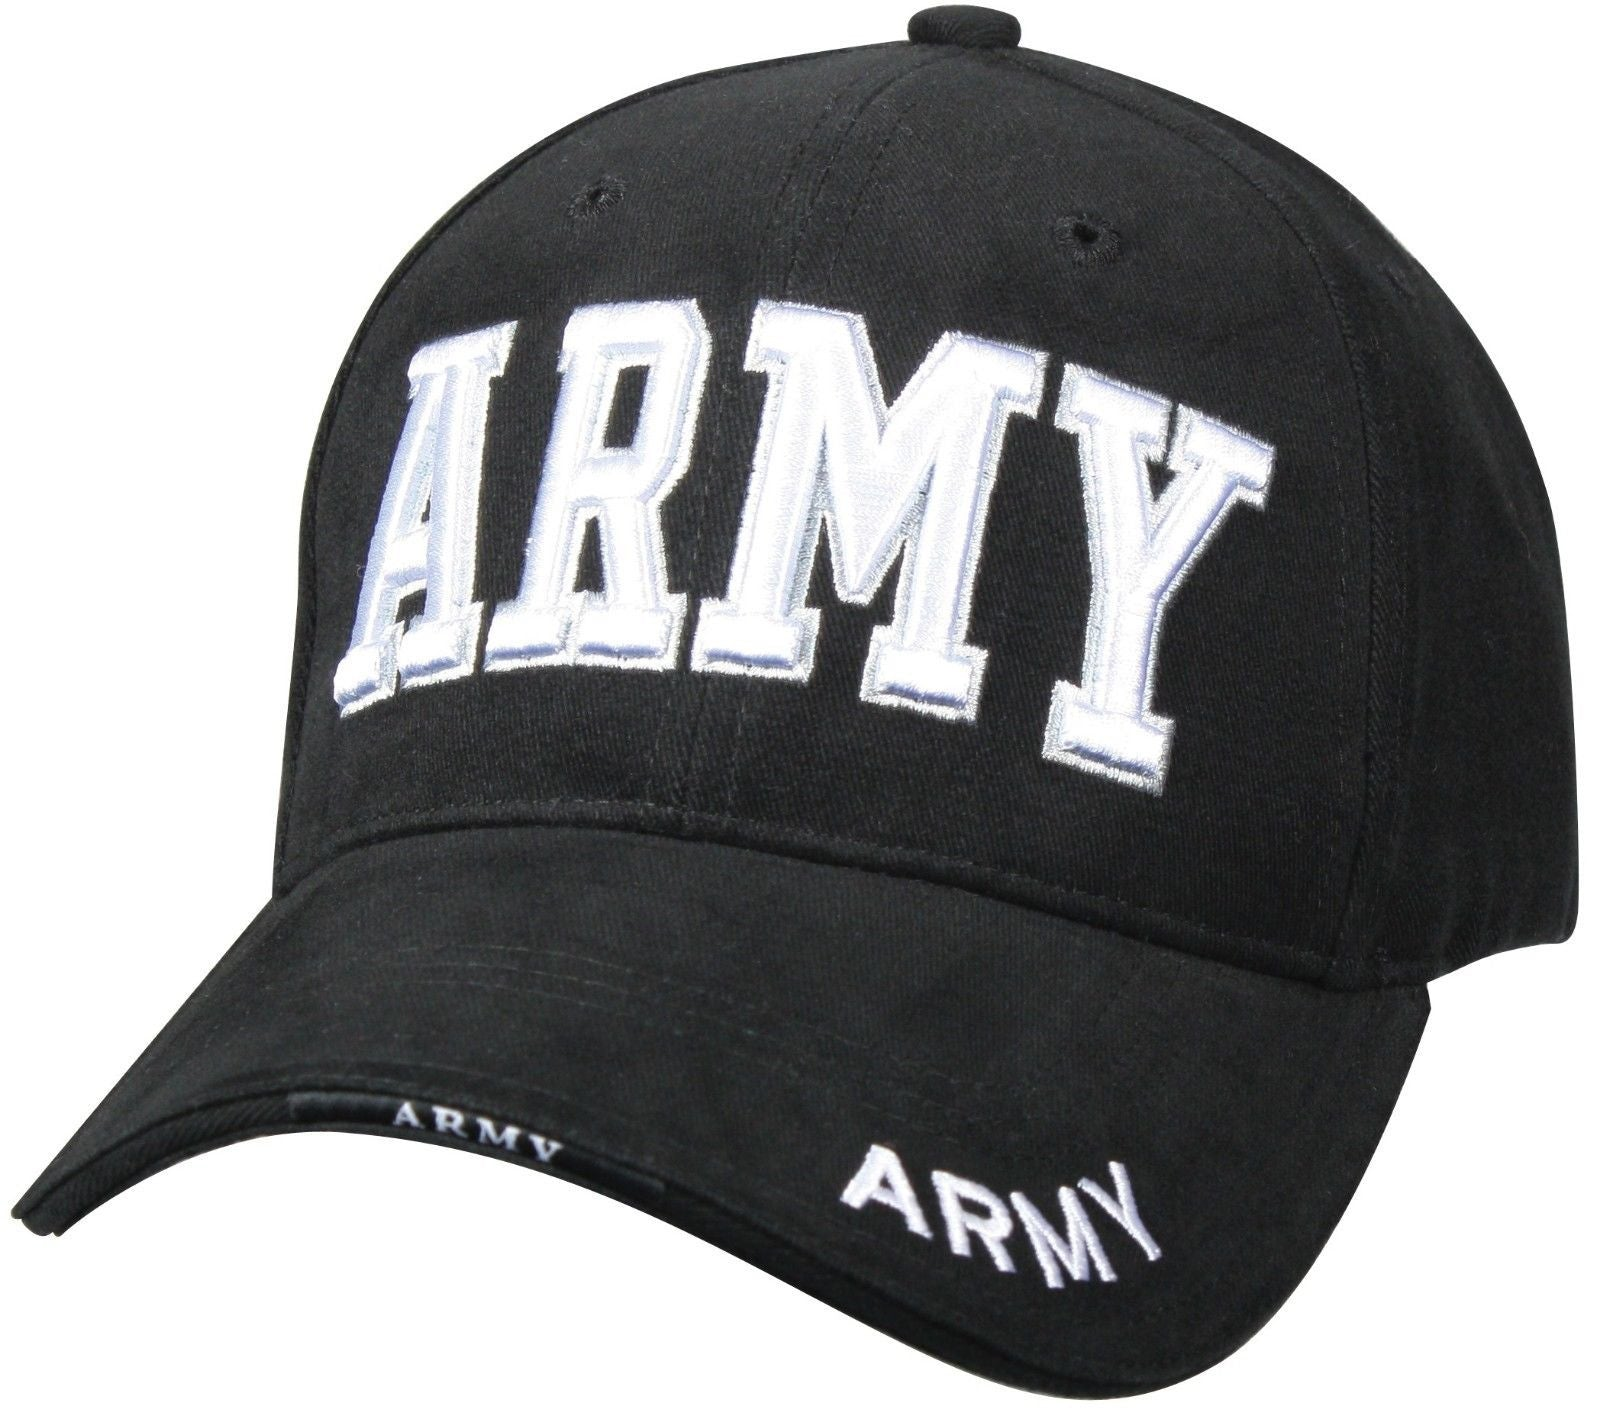 Quot Army Quot Black Hat Deluxe Baseball Cap Grunt Force